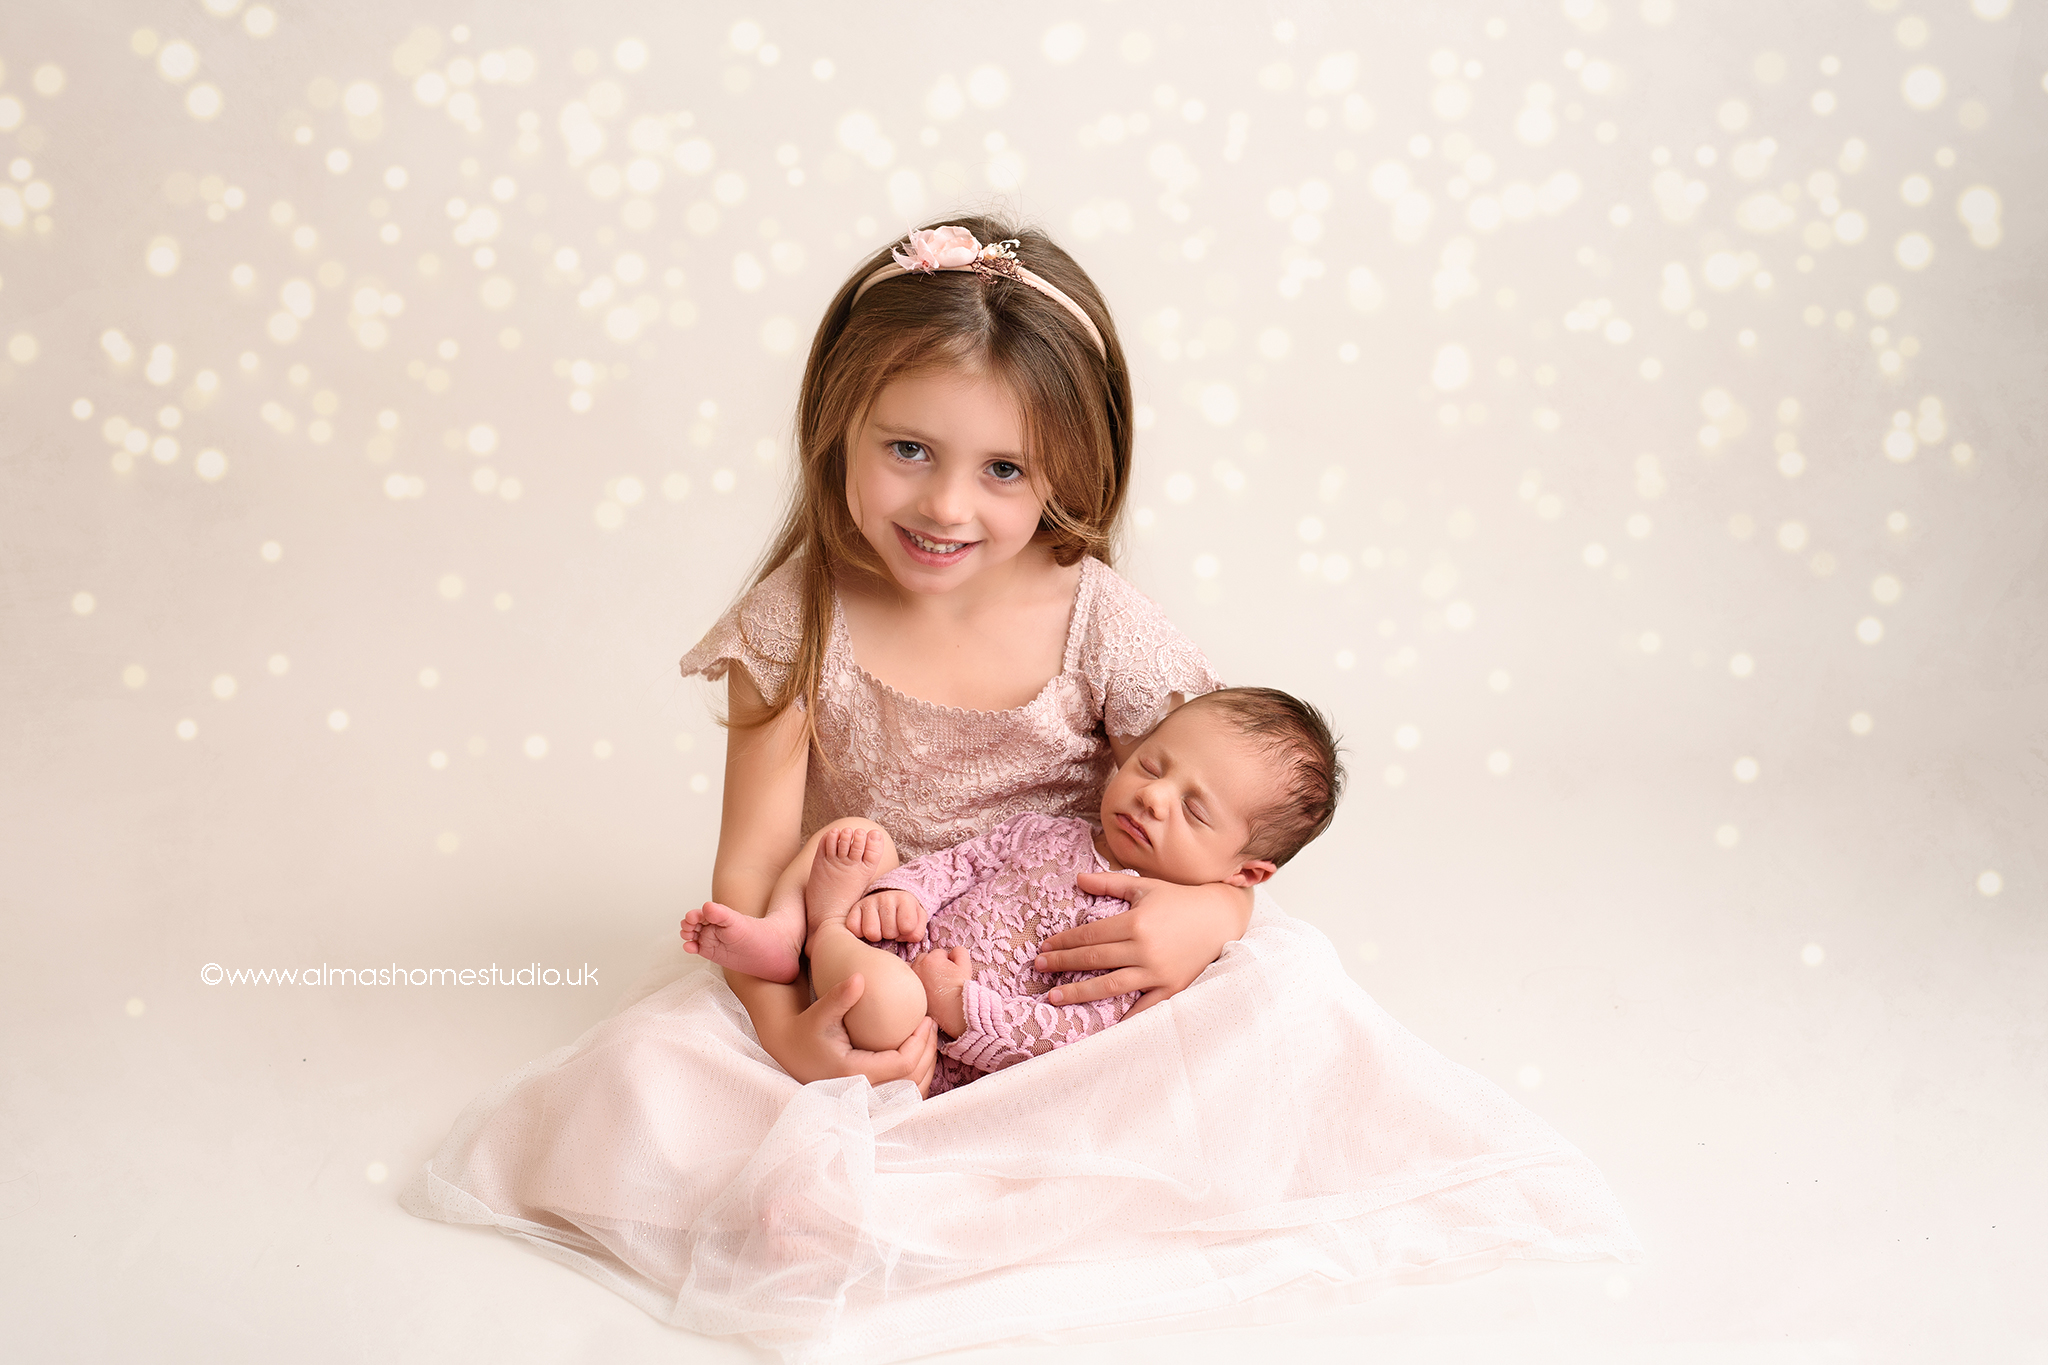 Newborn Photographer in Dorset/Wiltshire/Somerset Includes photos of baby with siblings